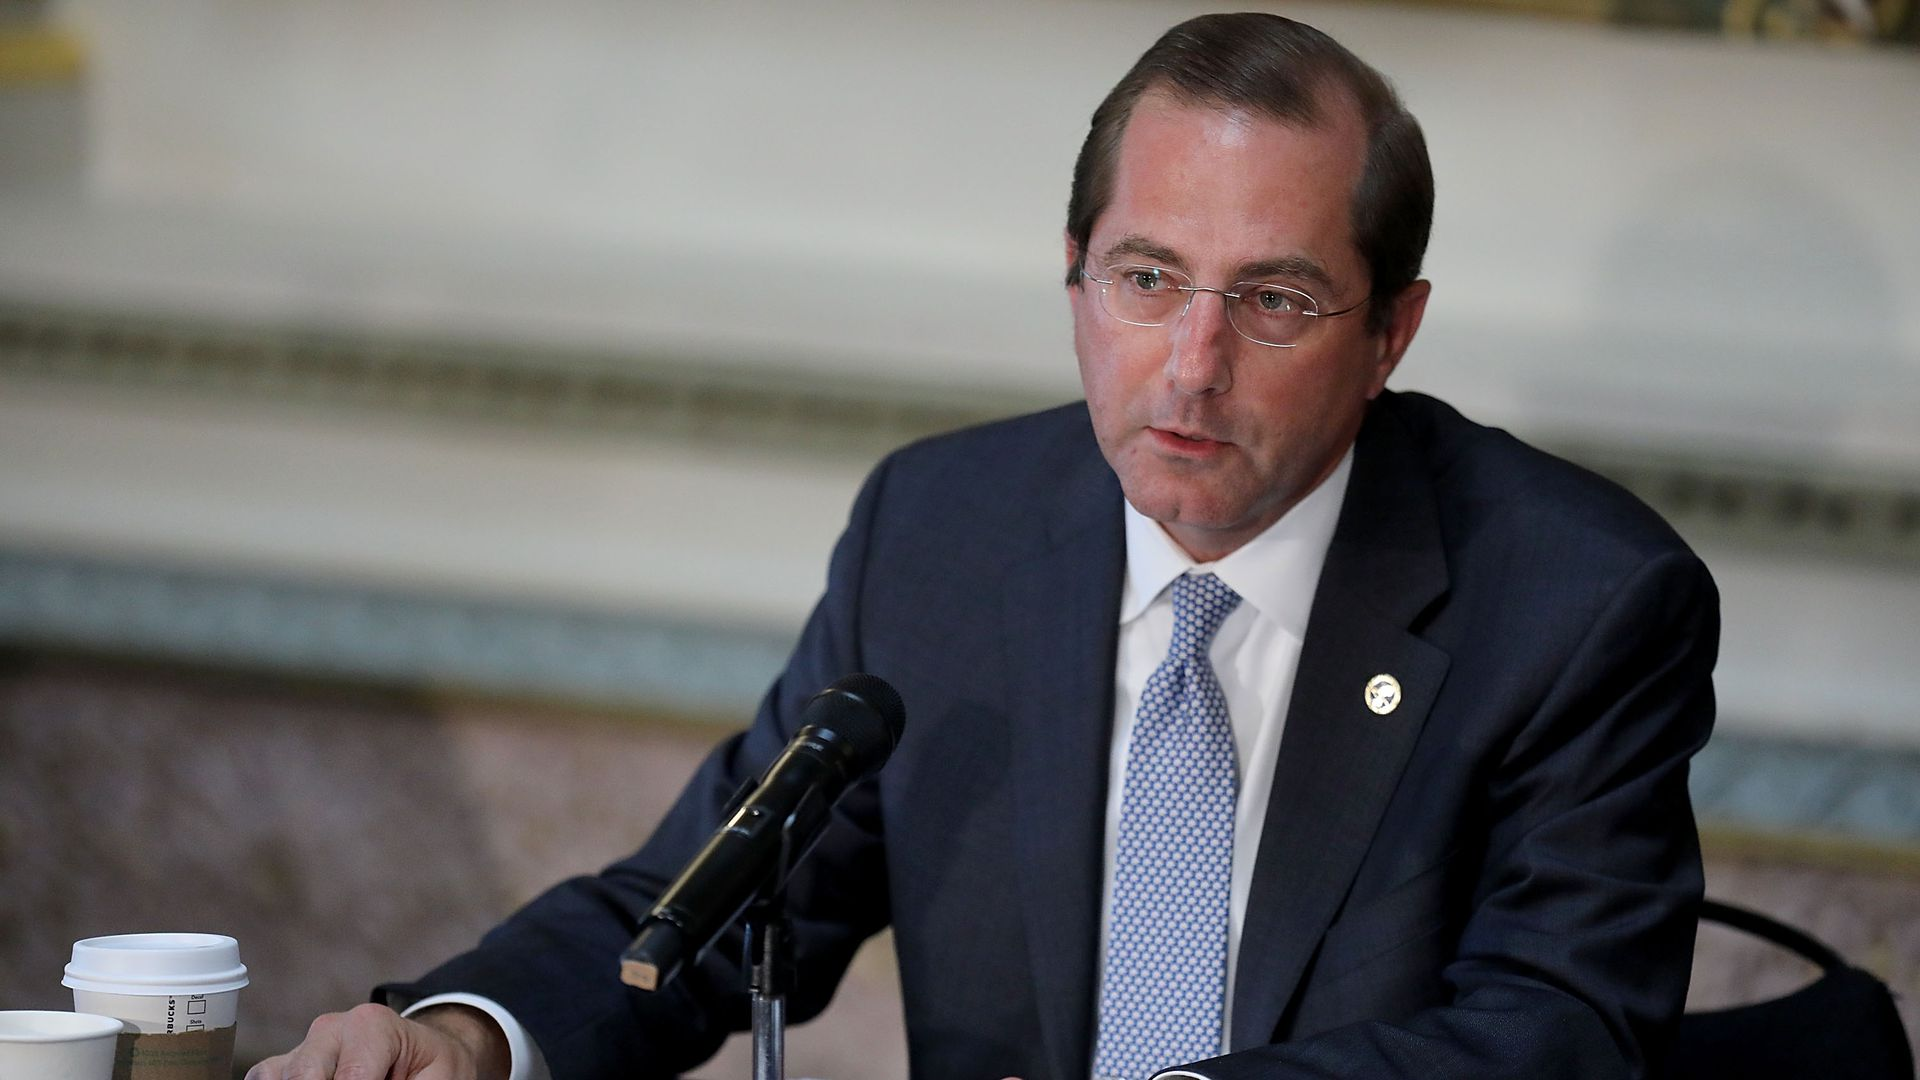 HHS Secretary Alex Azar